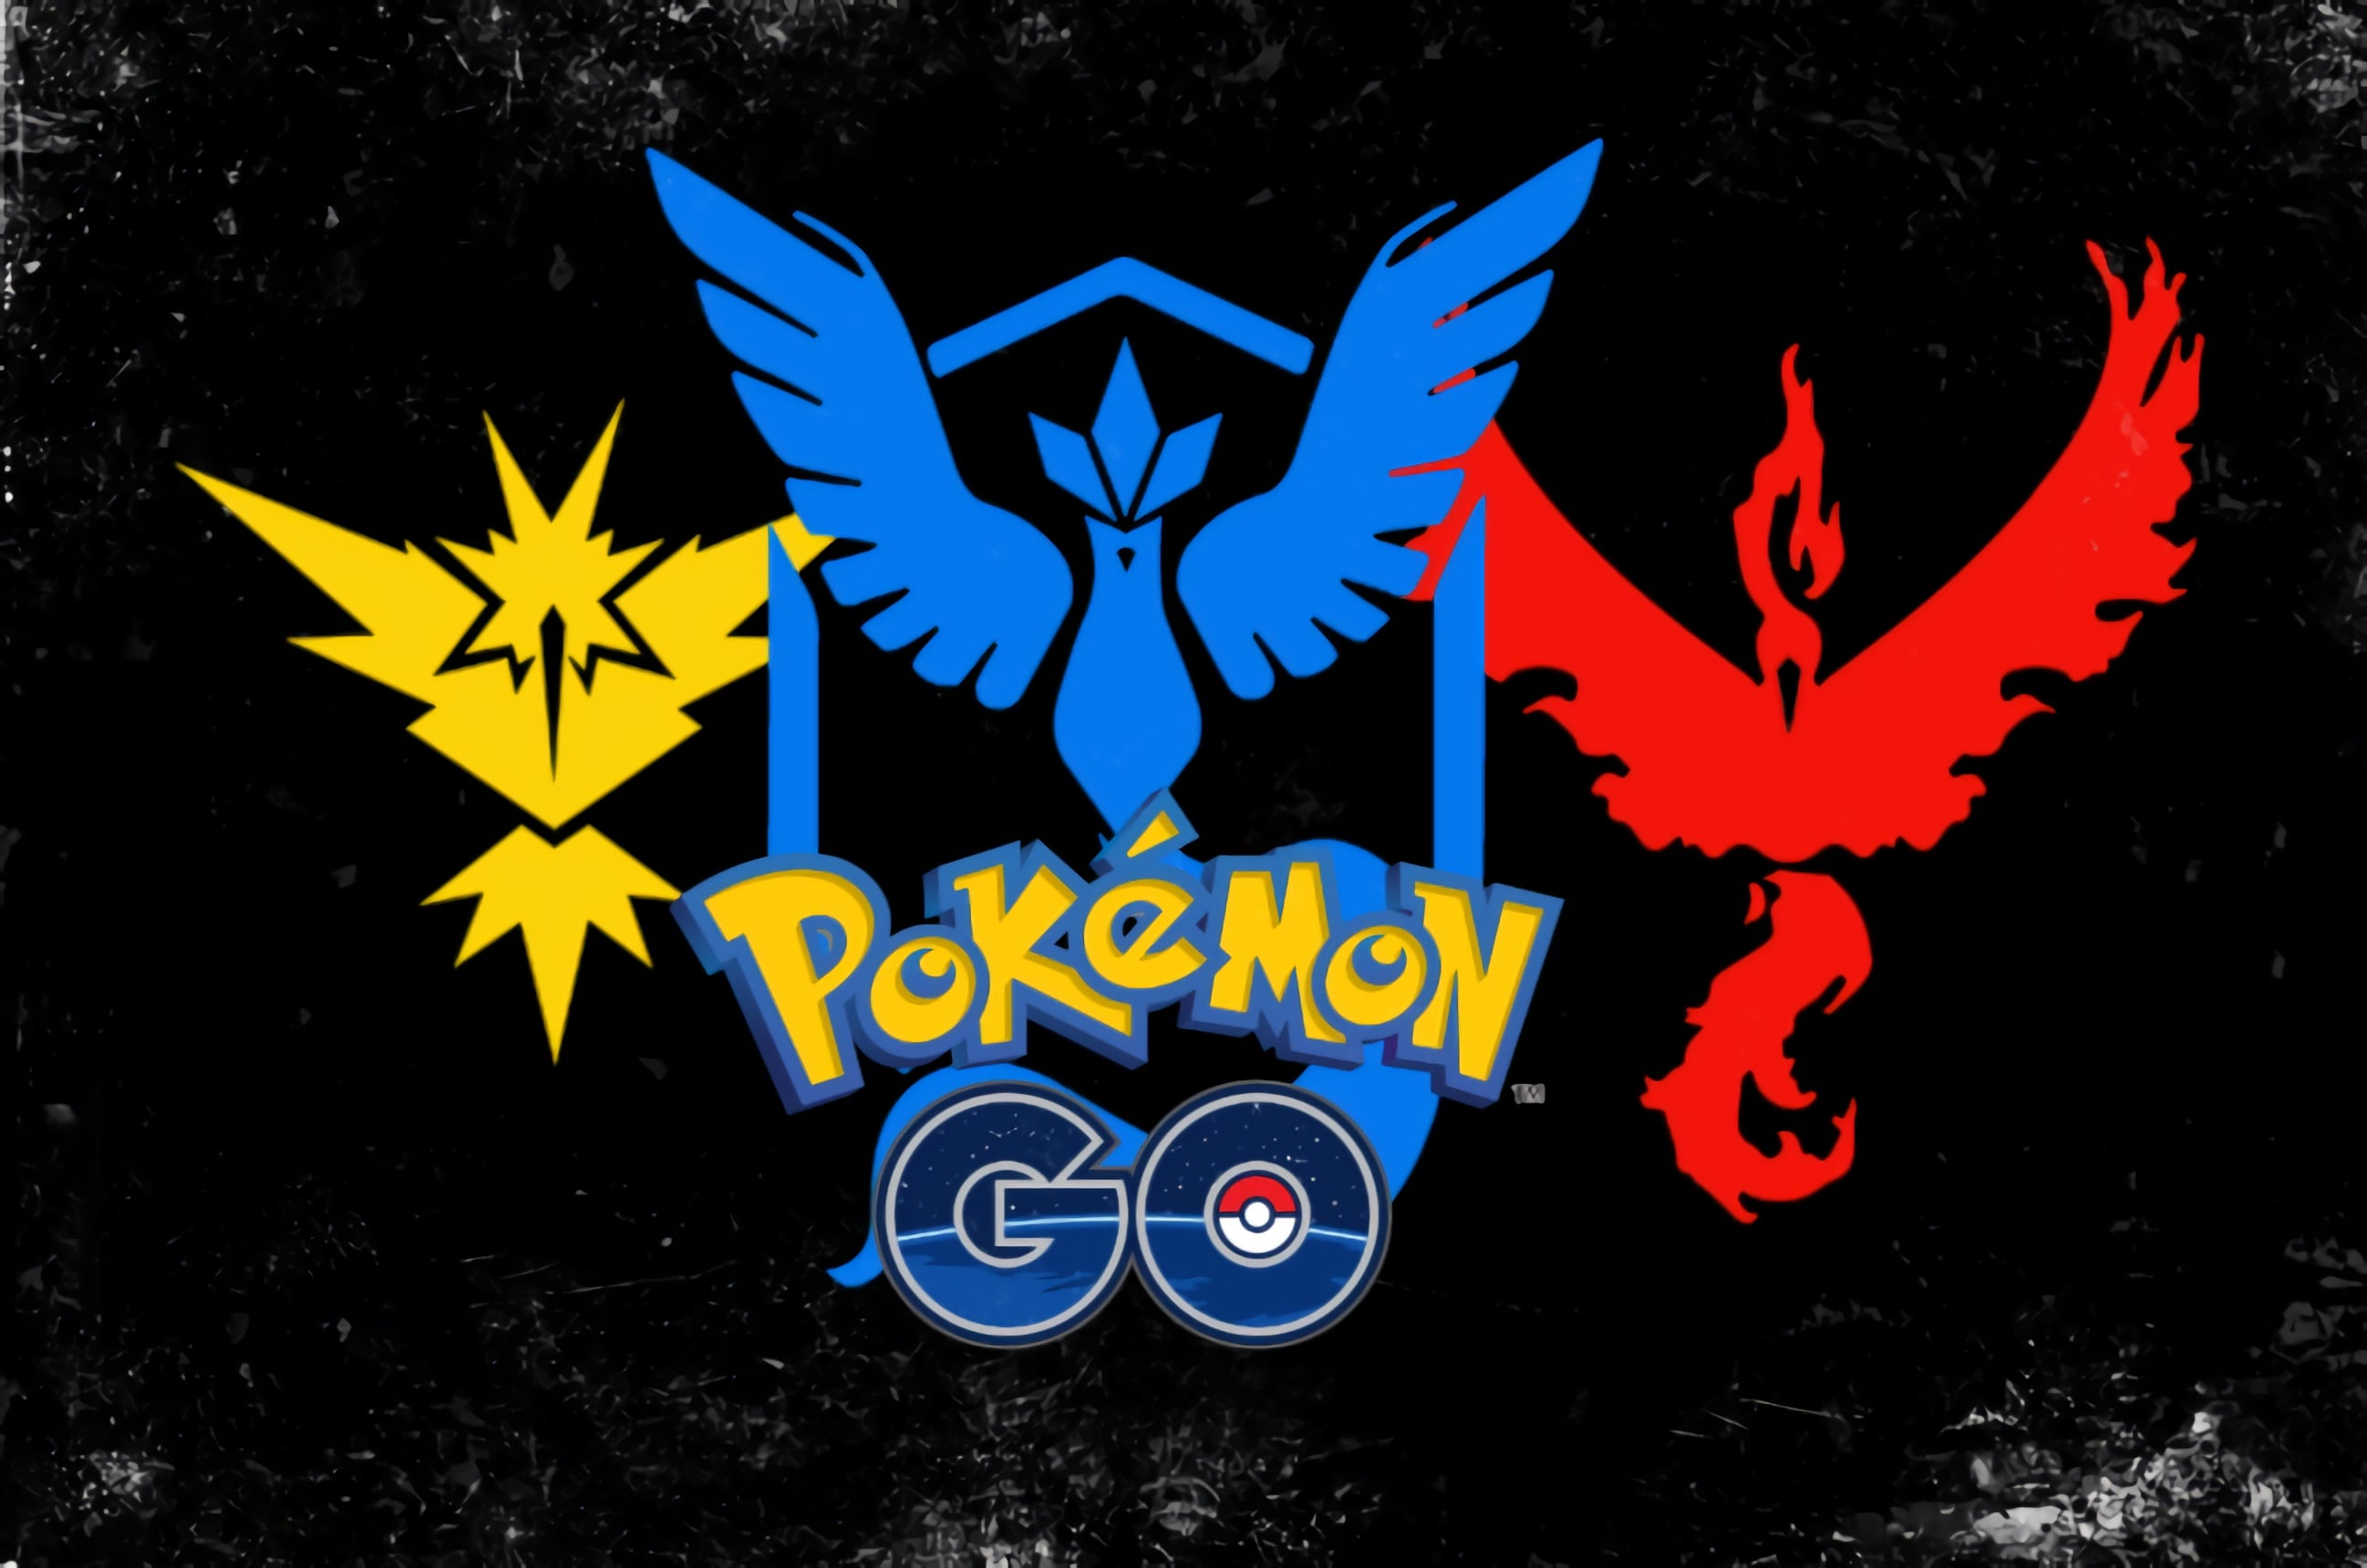 Pokemon Go widescreen wallpapers